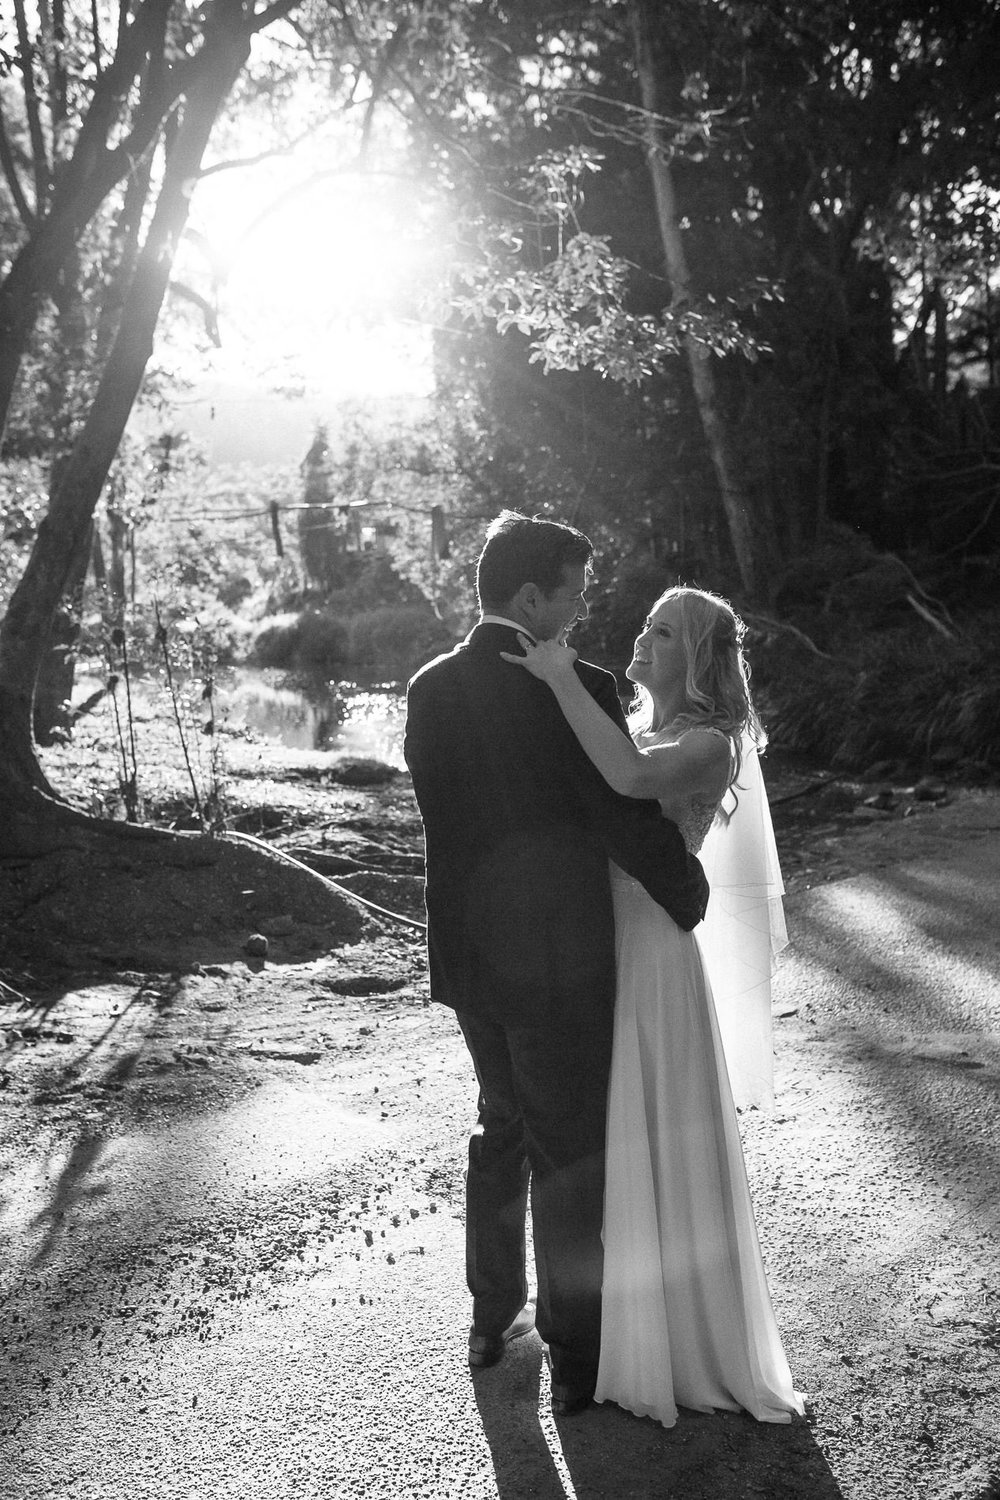 True North Photography_Boomerang Farm_Stacey and Isaac_Gold Coast Wedding_Barm Wedding_Hinterland Wedding-133.jpg